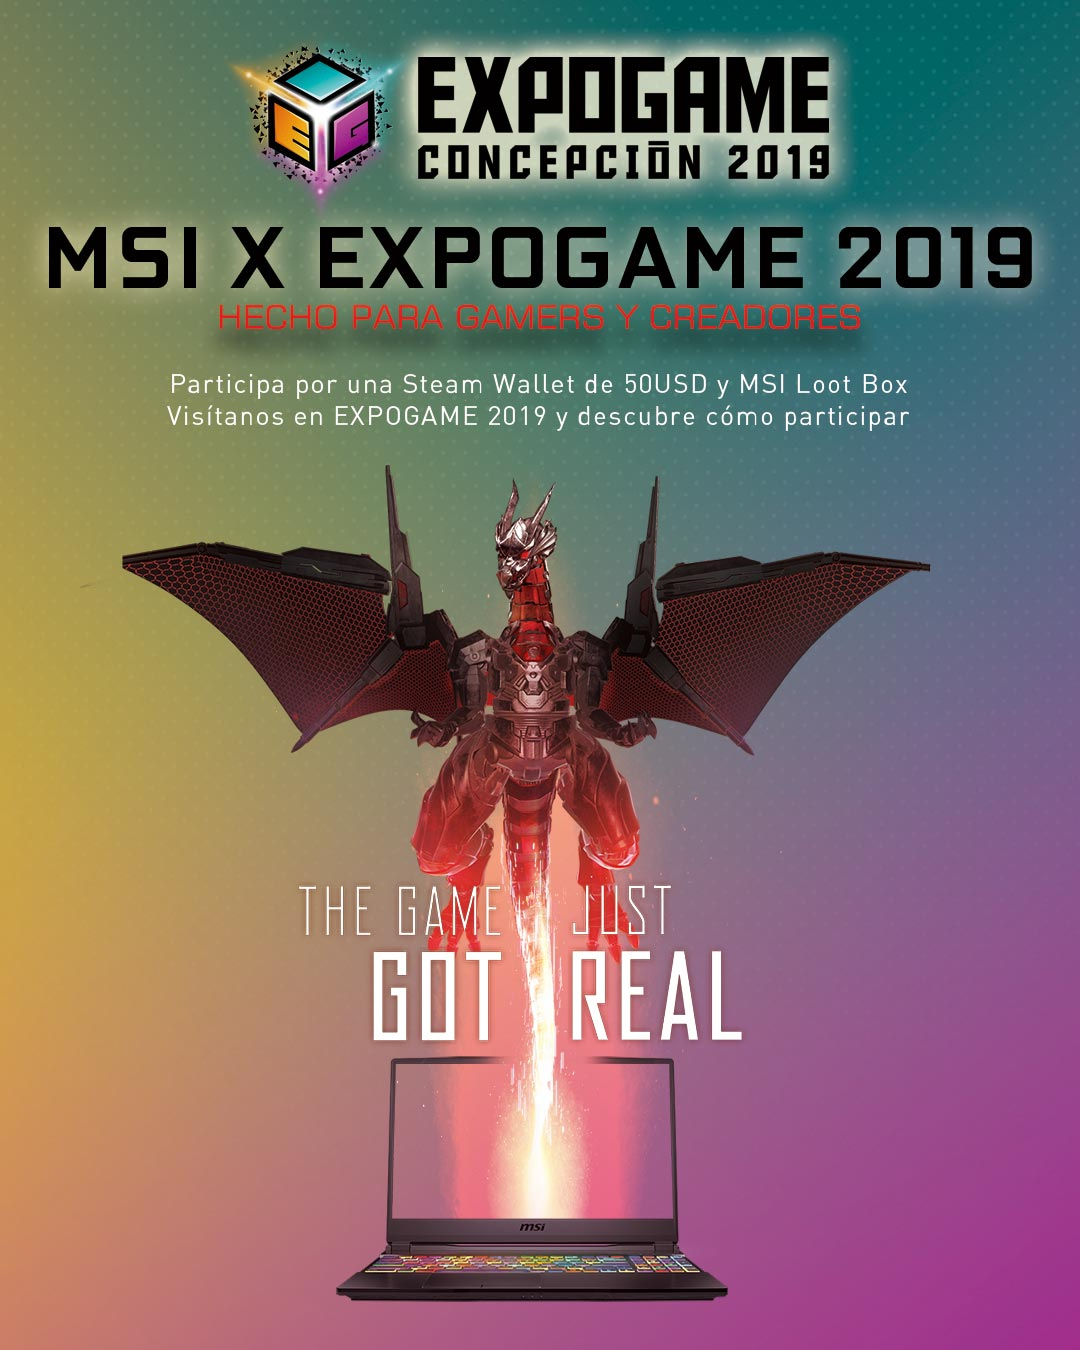 msi x expogame 2019 event banner for mobile